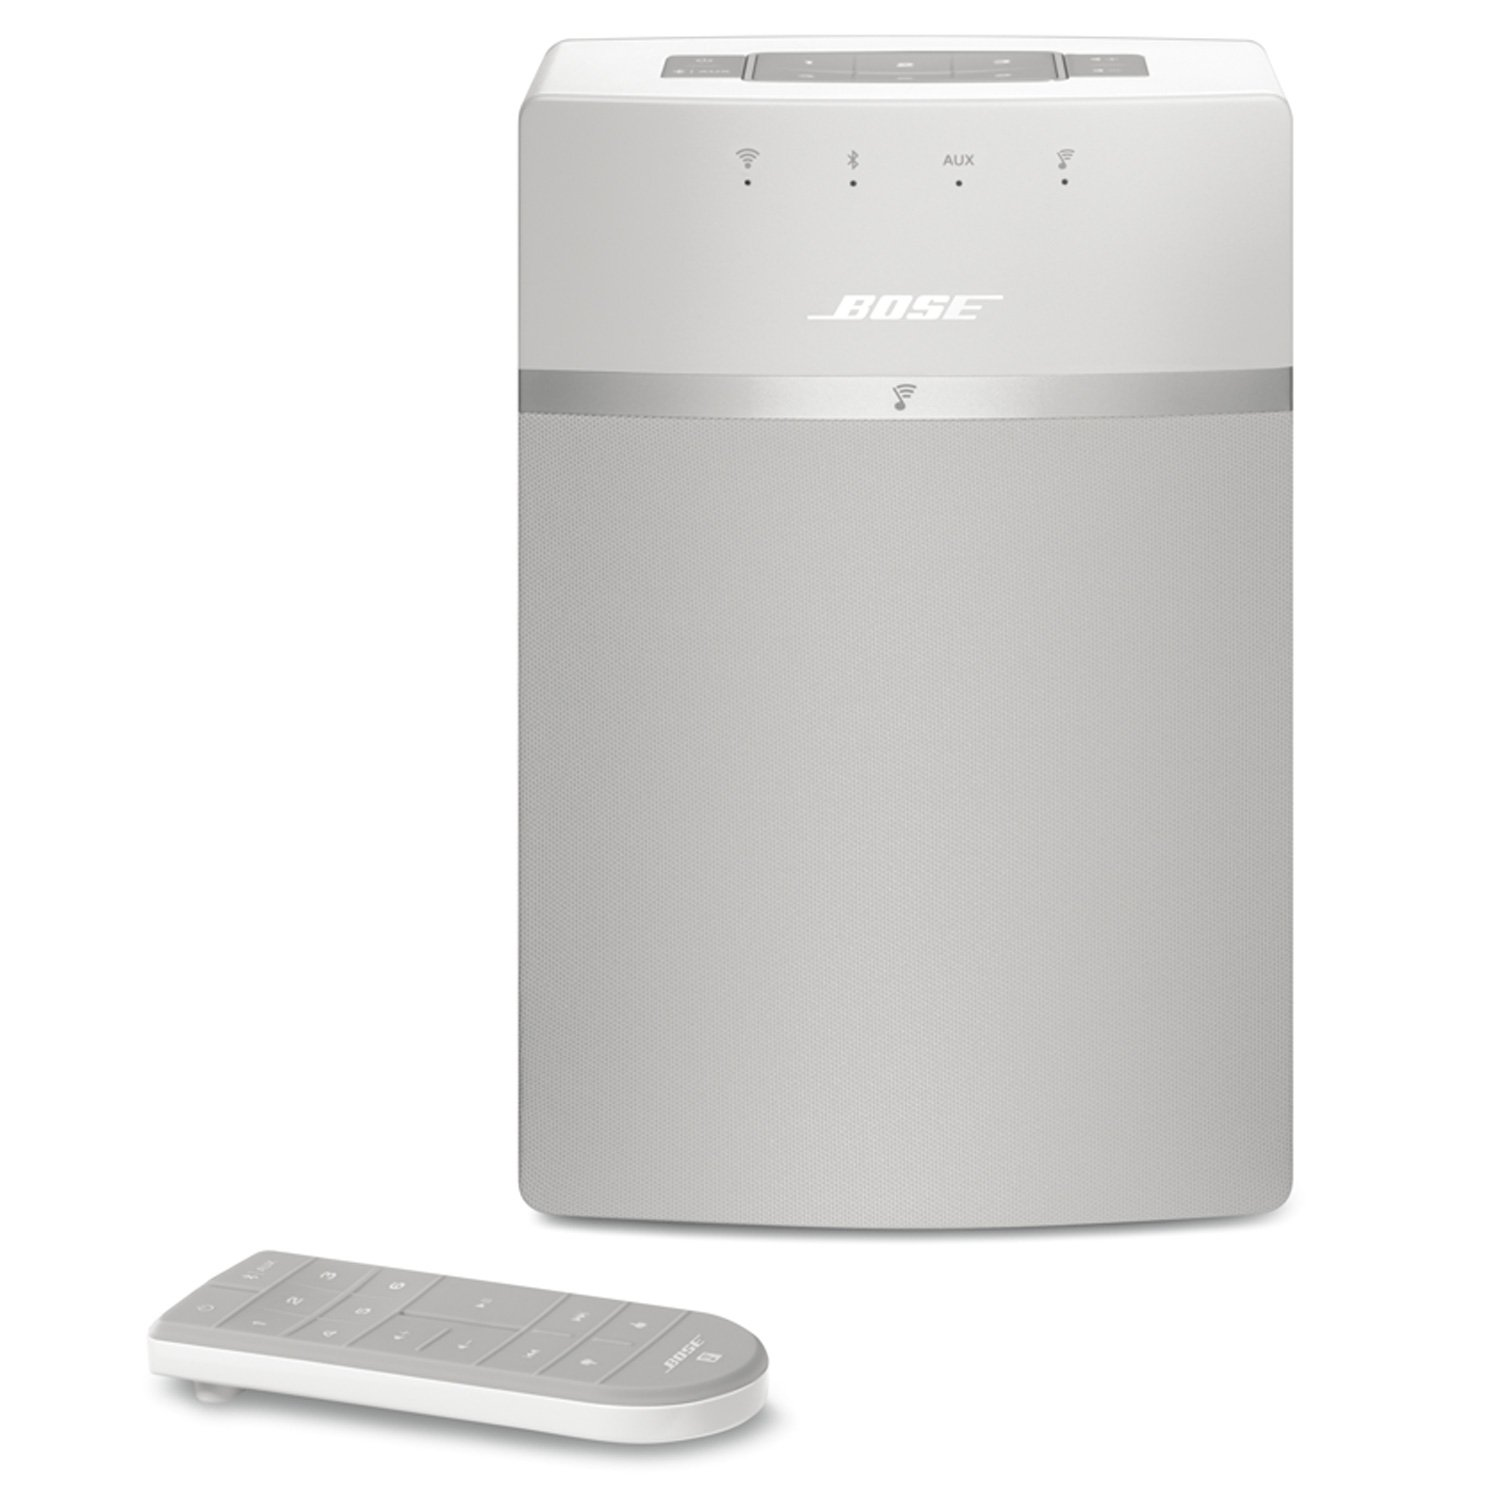 bose 416776. bose soundtouch 10 wireless music system (white) price: buy online in india -amazon.in 416776 e